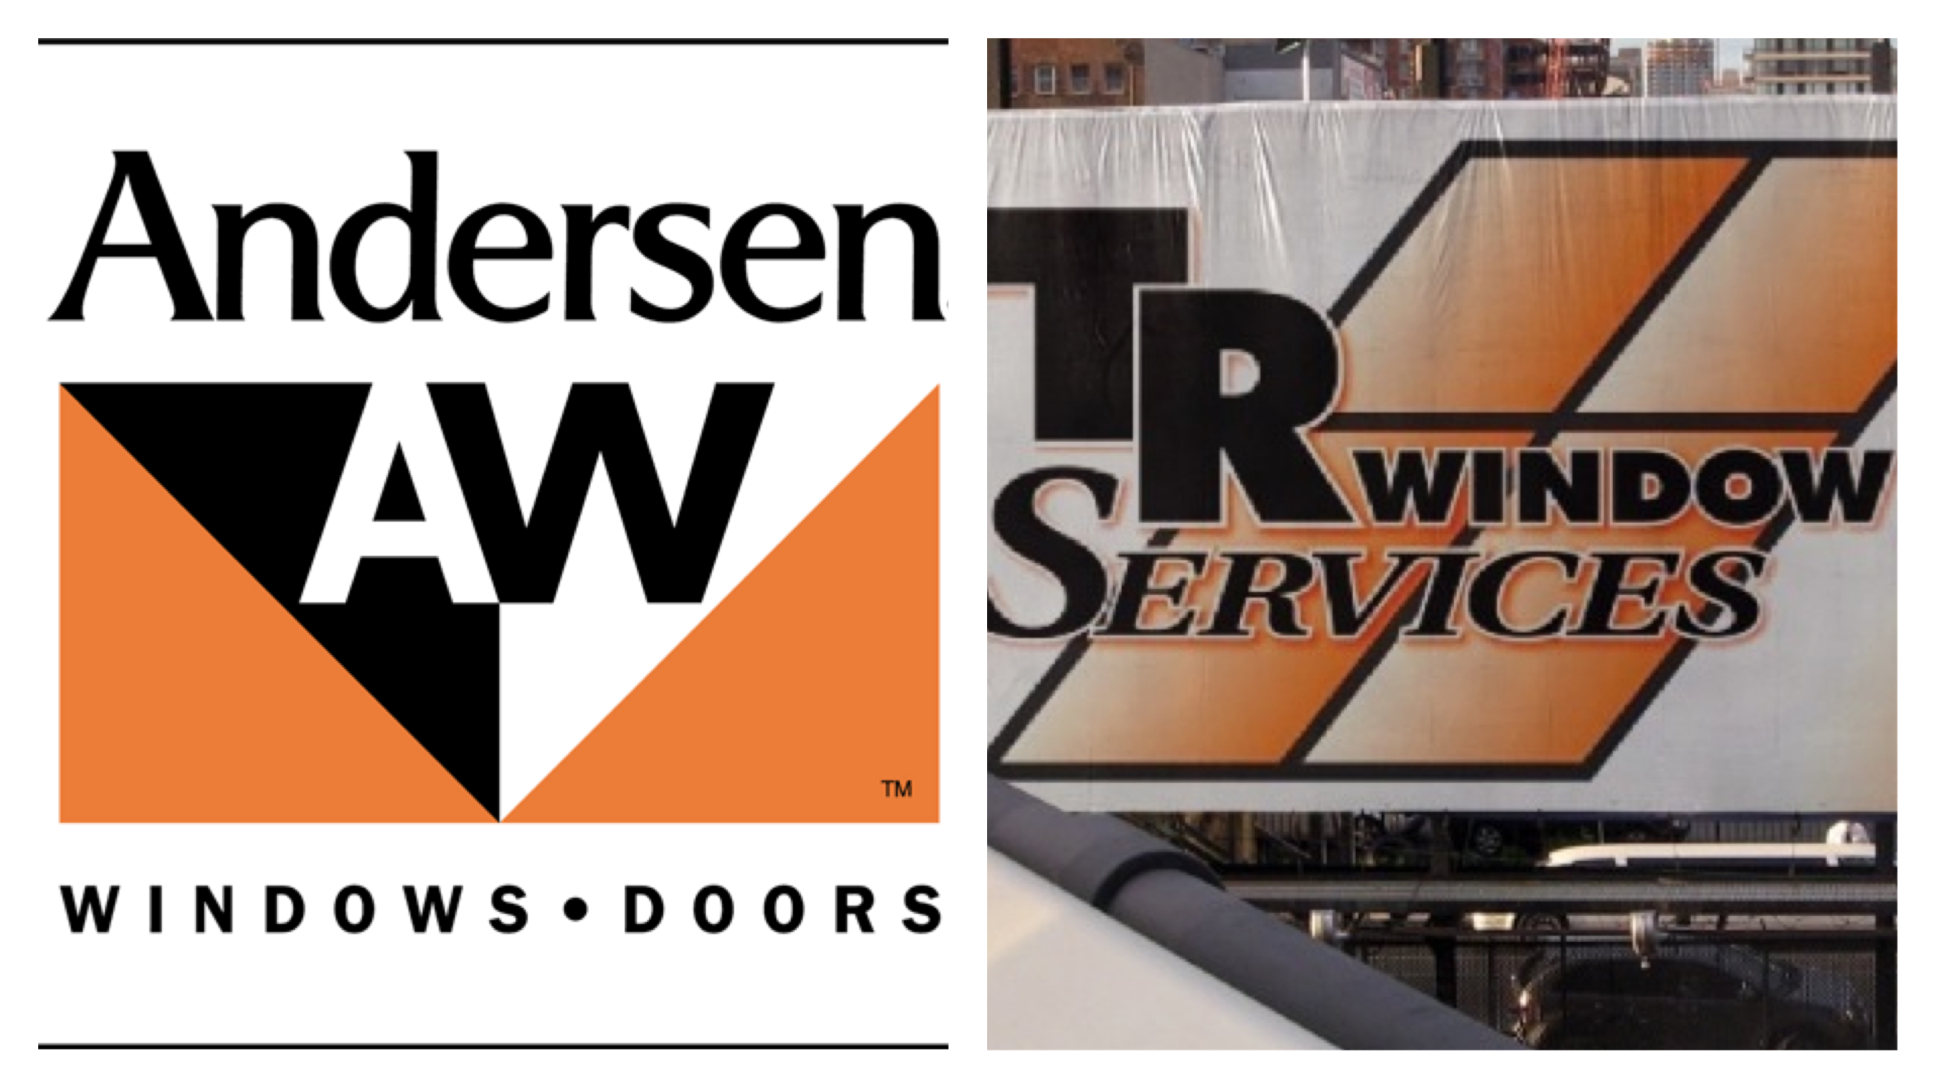 trwindowservices2 Andersen Windows Ranking in Remodeling Magazine 2013